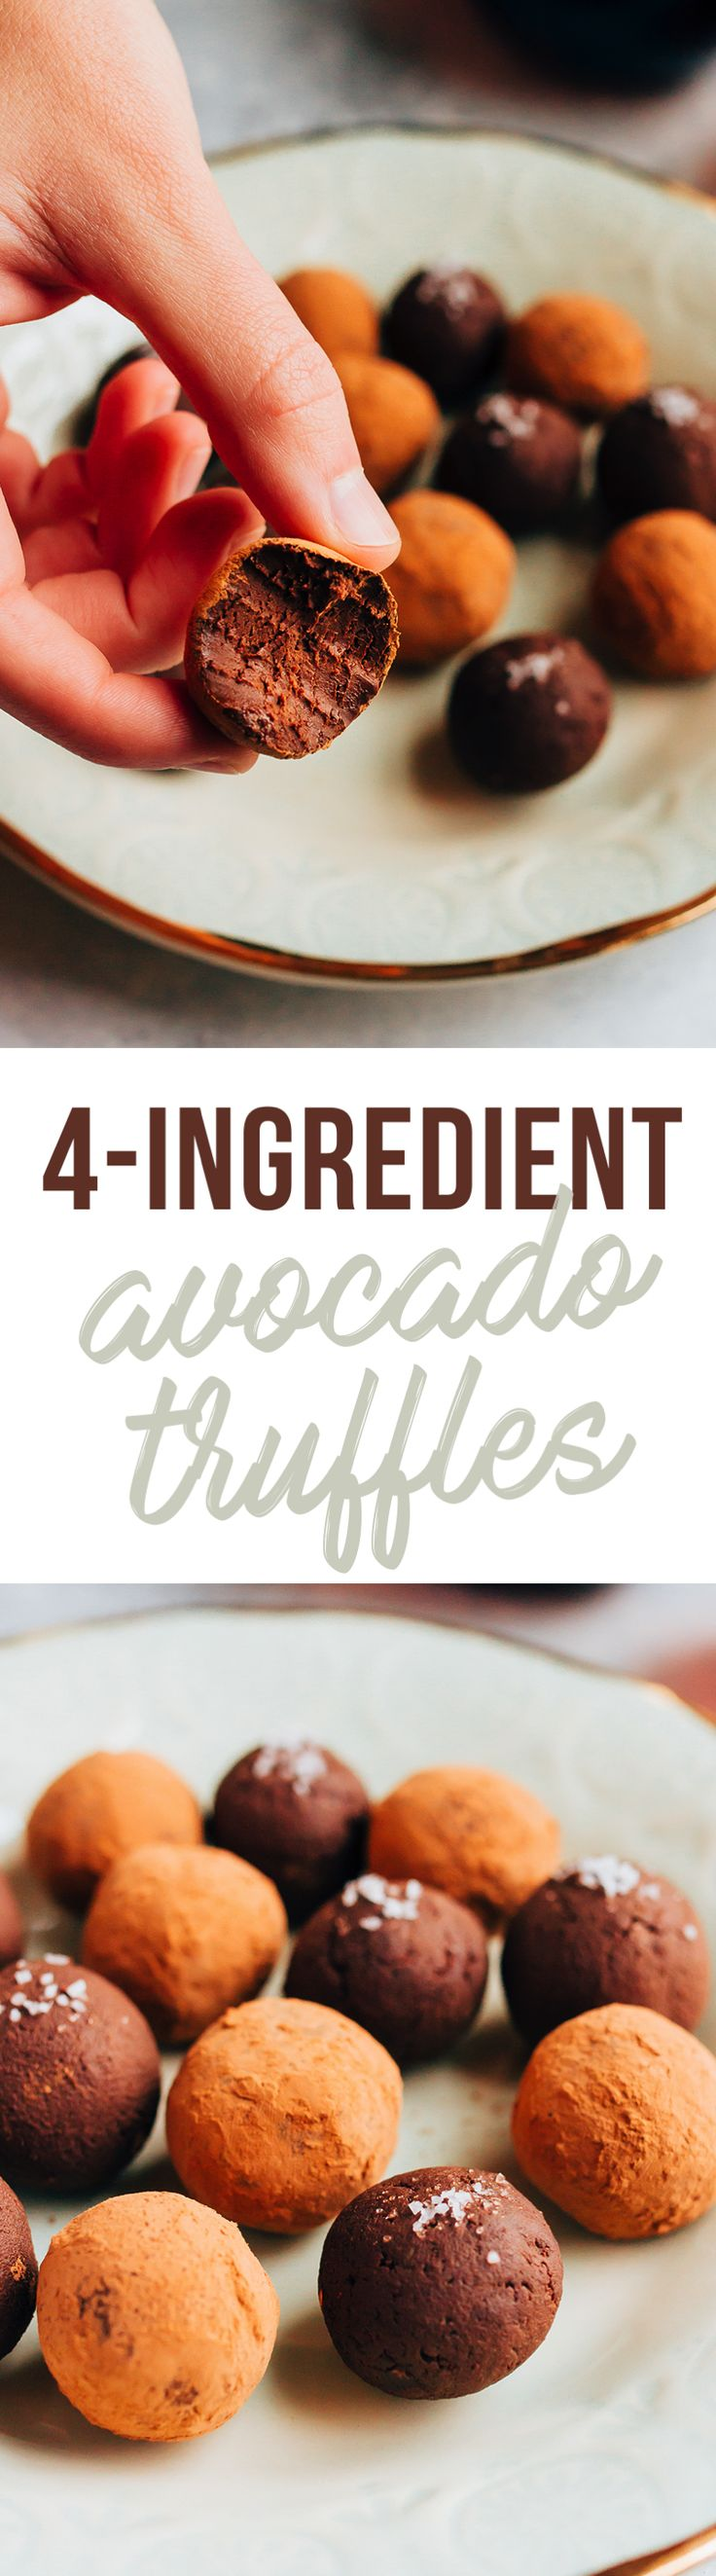 Best 25+ Dairy free chocolate ideas on Pinterest | Dairy free ...